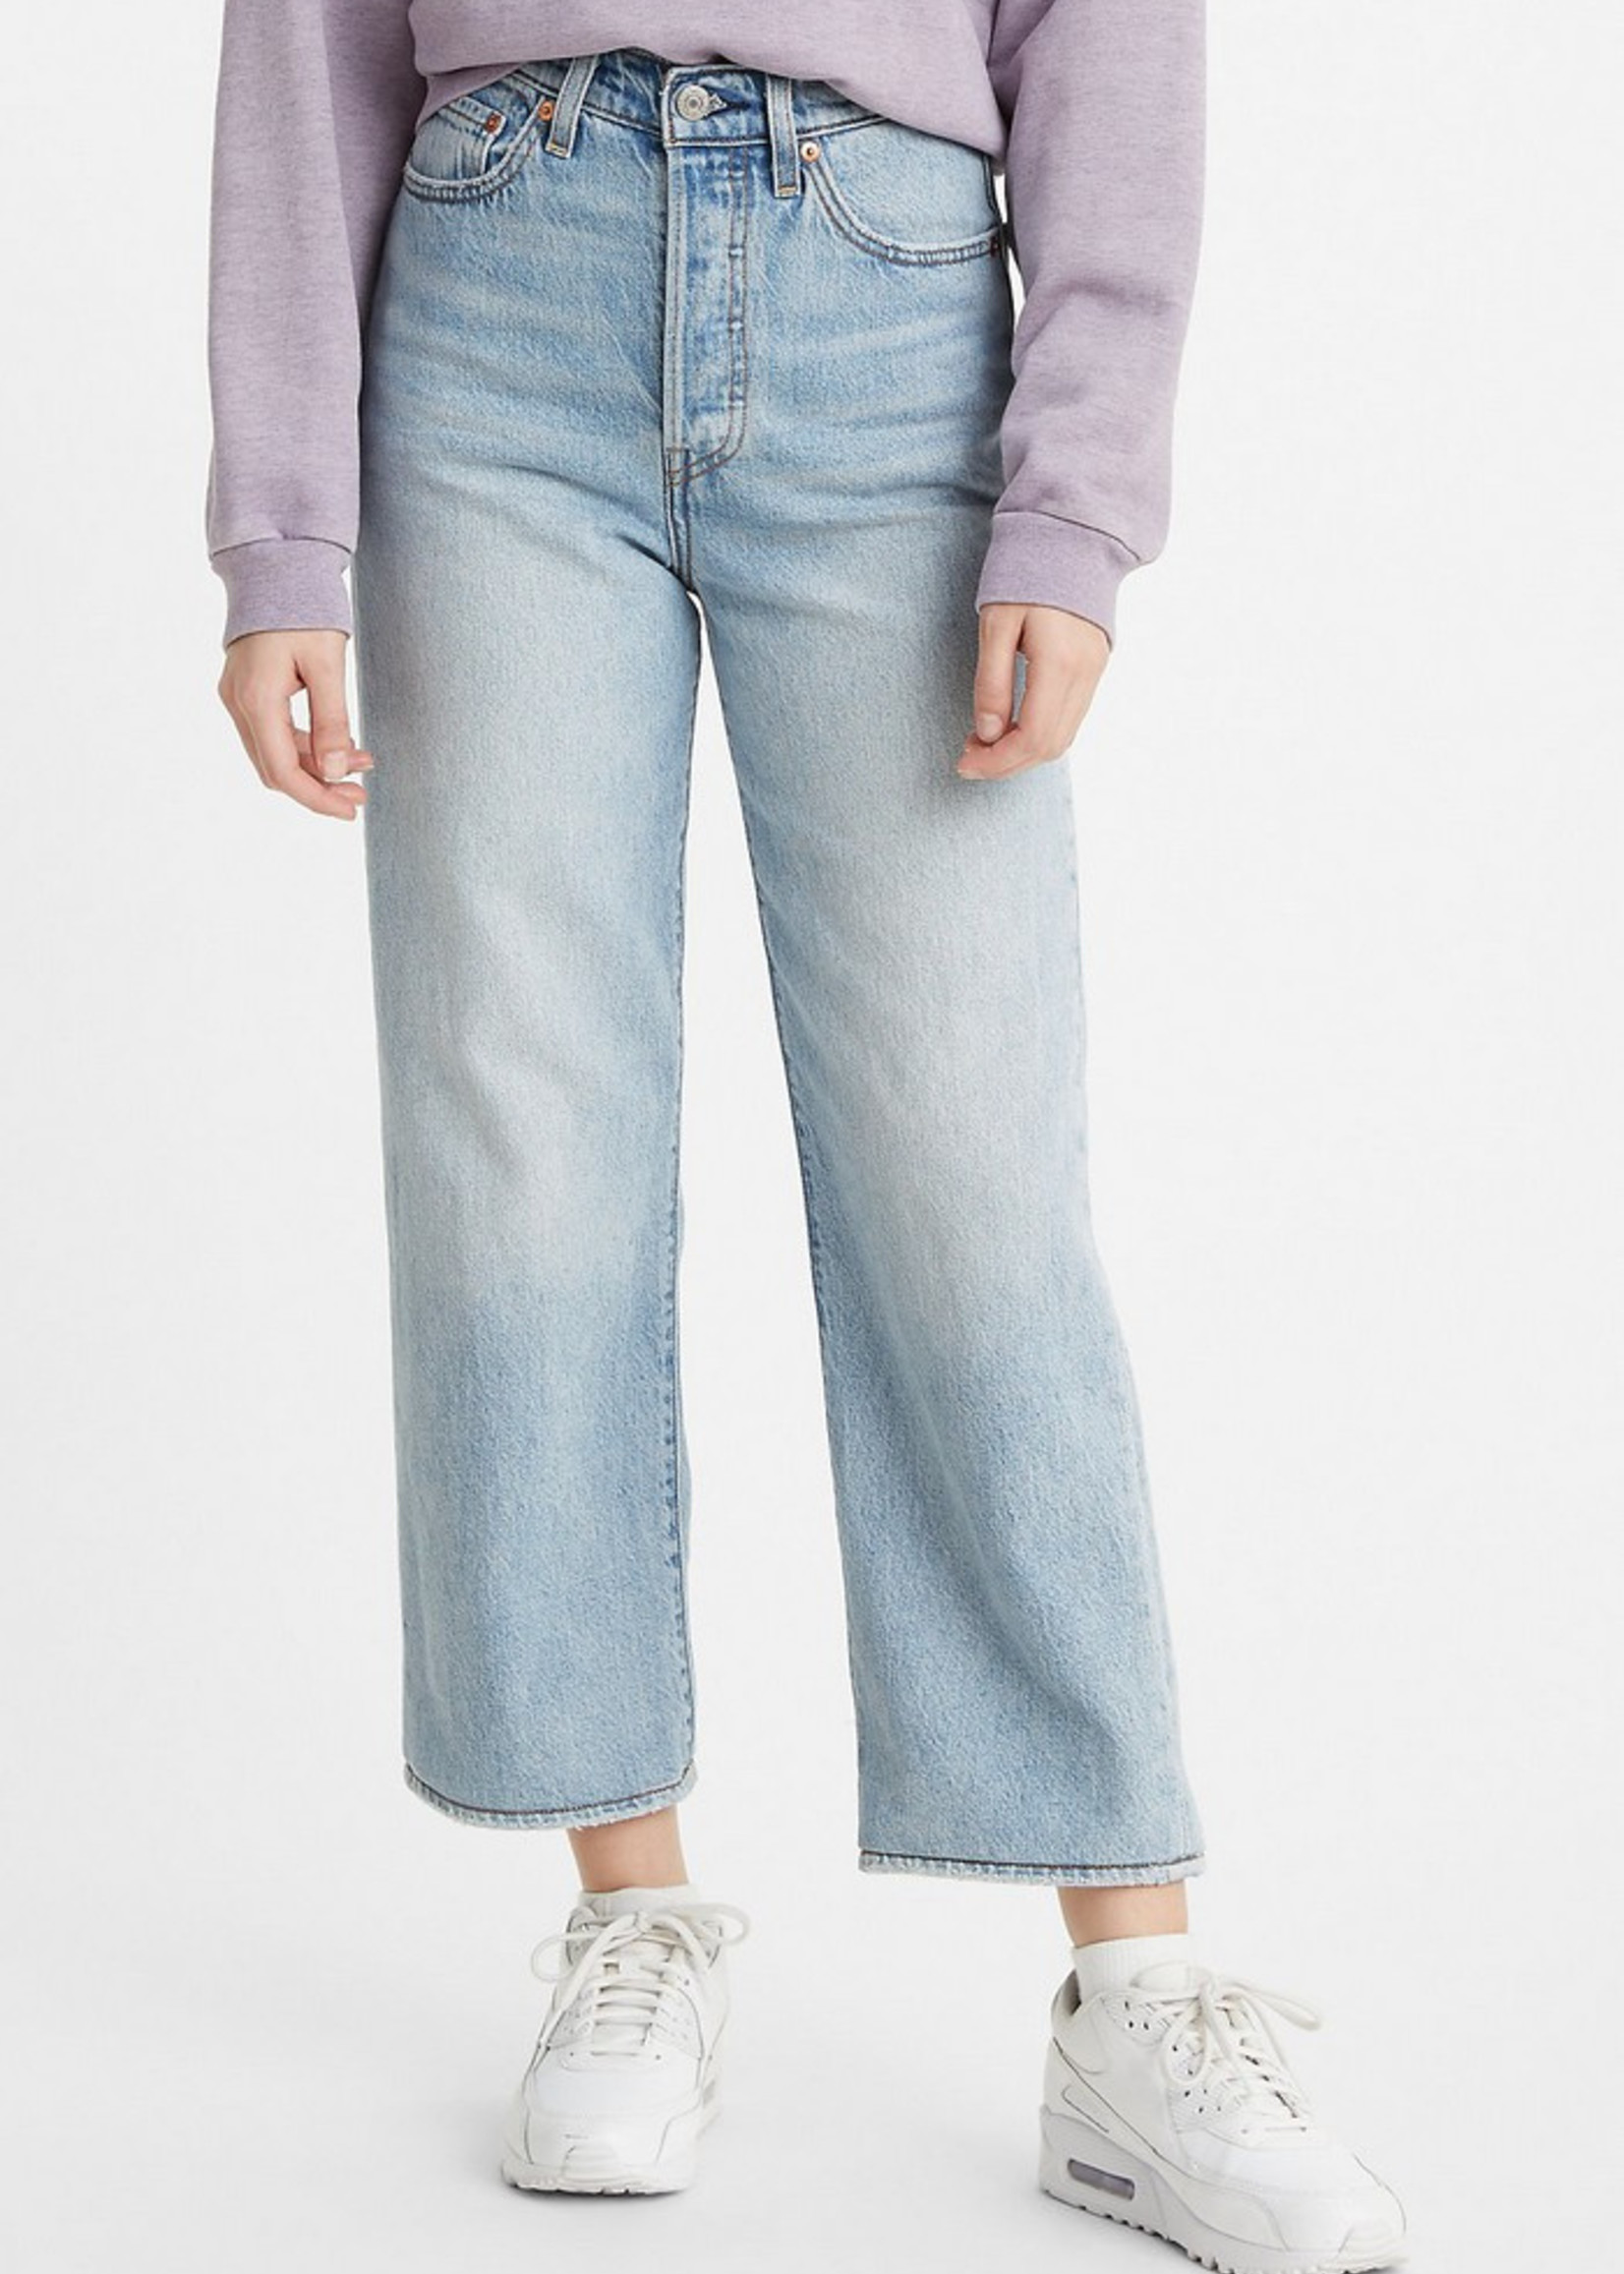 LEVI'S LEVI'S RIB CAGE STRAIGHT ANKLE MIDDLE ROAD